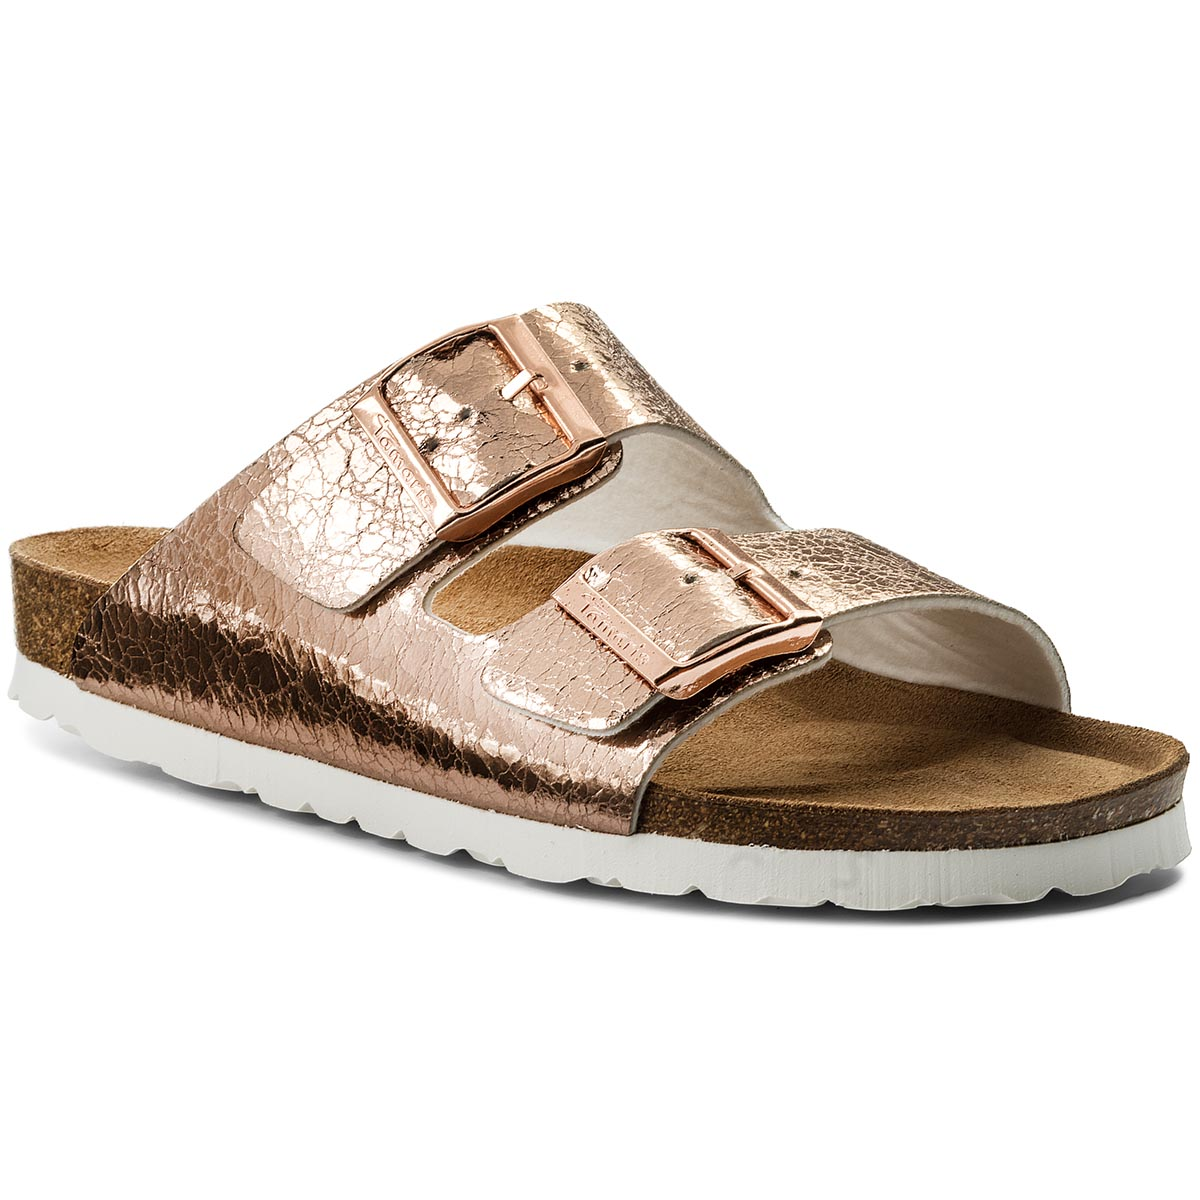 Klapki TAMARIS - 1-27525-20 Rose Metallic 952